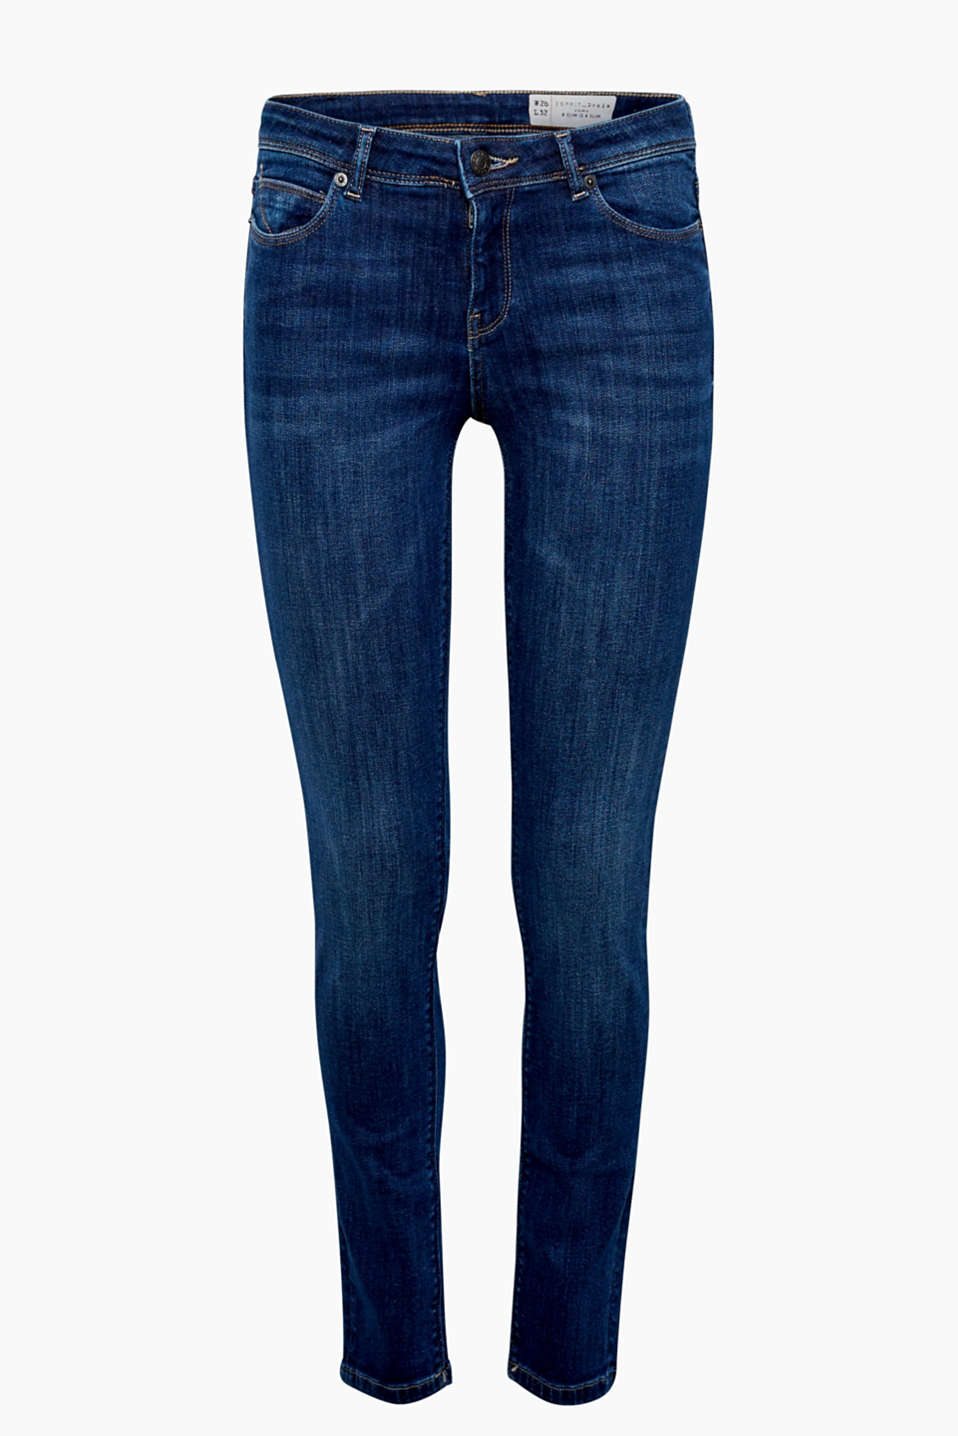 Slim jeans with a high percentage of stretch, five pockets and whiskering effects are skin-tight + super comfortable!